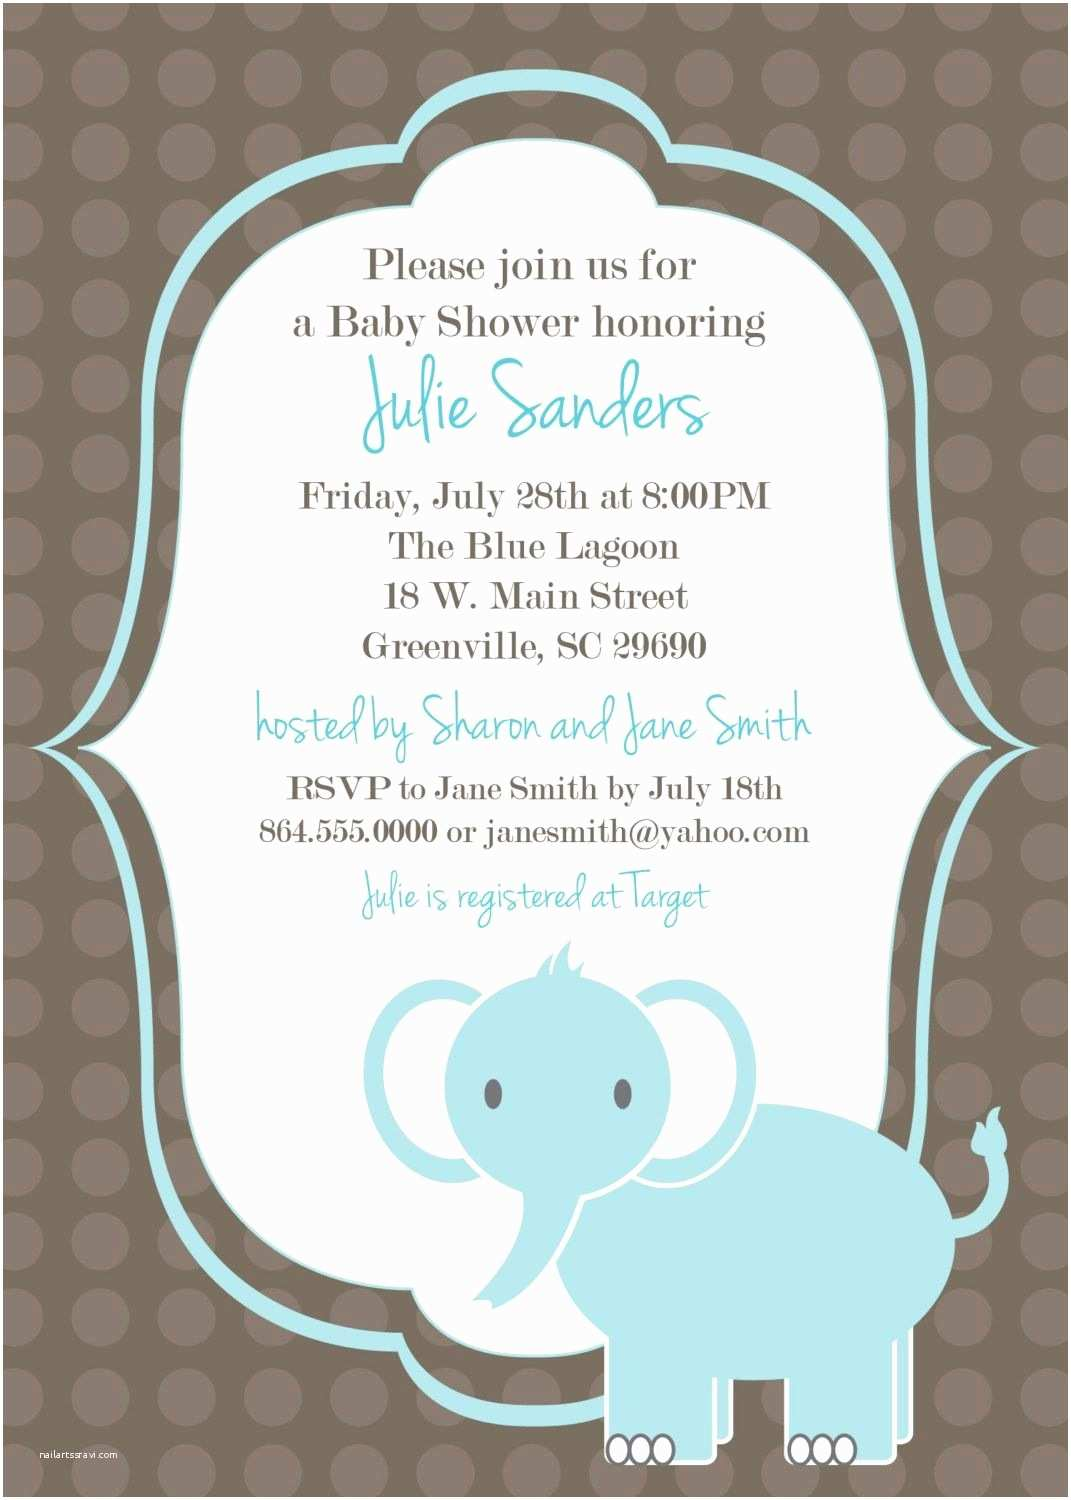 Baby Shower Invitation Template Free Printable Baby Shower Invitation Templates